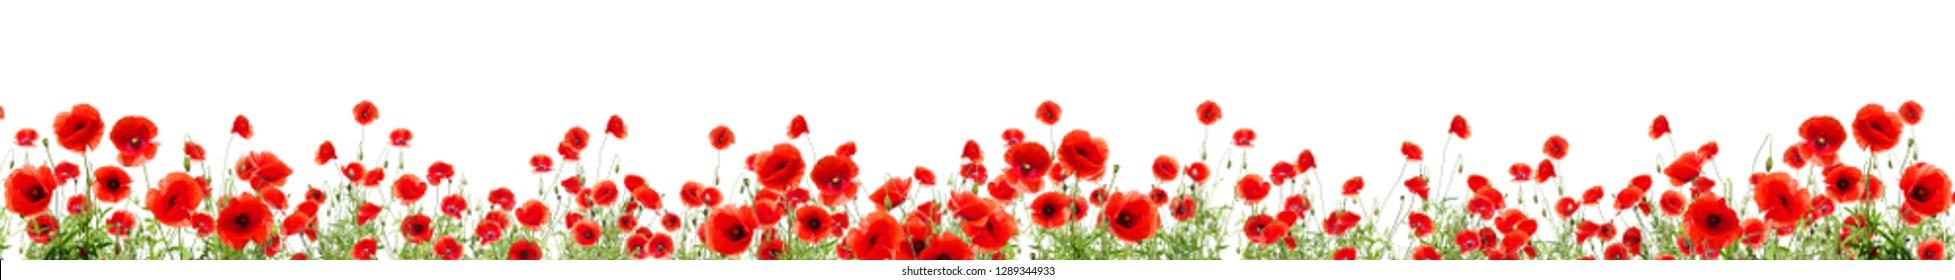 Poppies of different sizes on a white background.